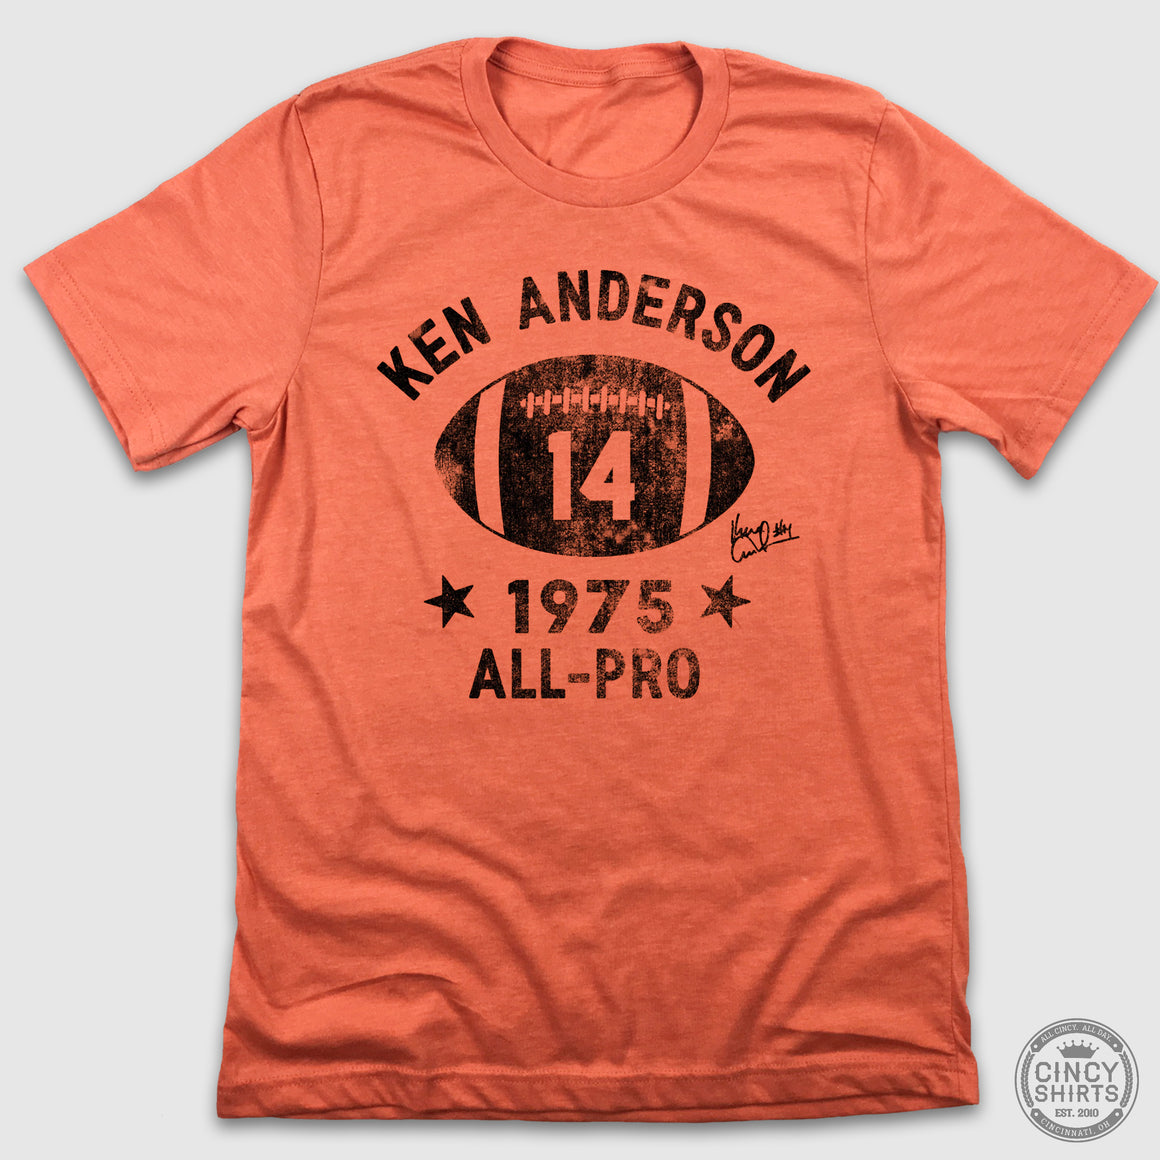 Ken Anderson Football Logo - Cincy Shirts